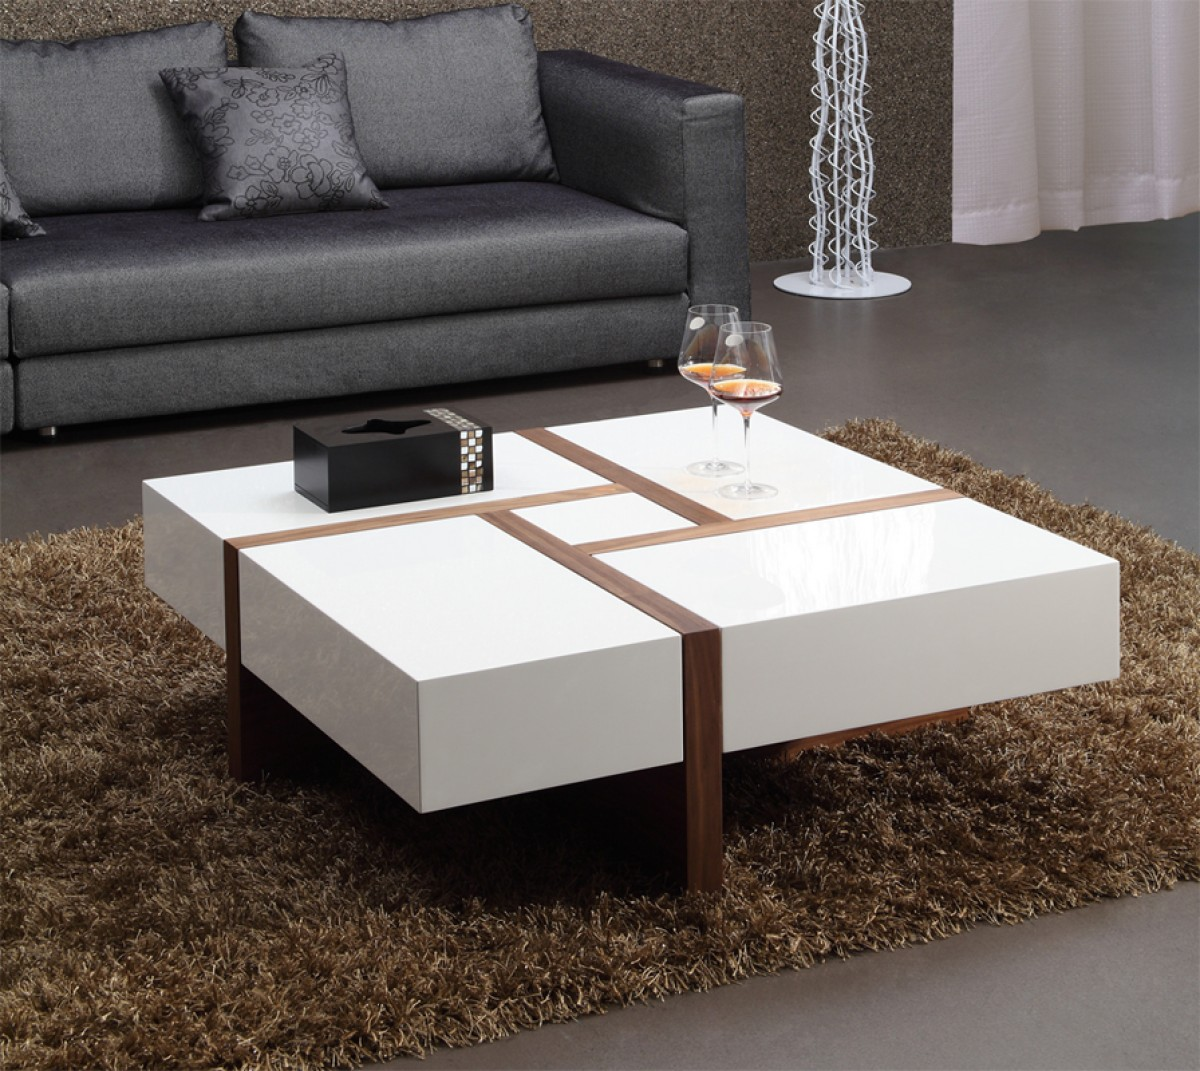 The Most Inspired Unique Contemporary Coffee Tables Ideas: Modrest Makai Modern White & Walnut Square Coffee Table